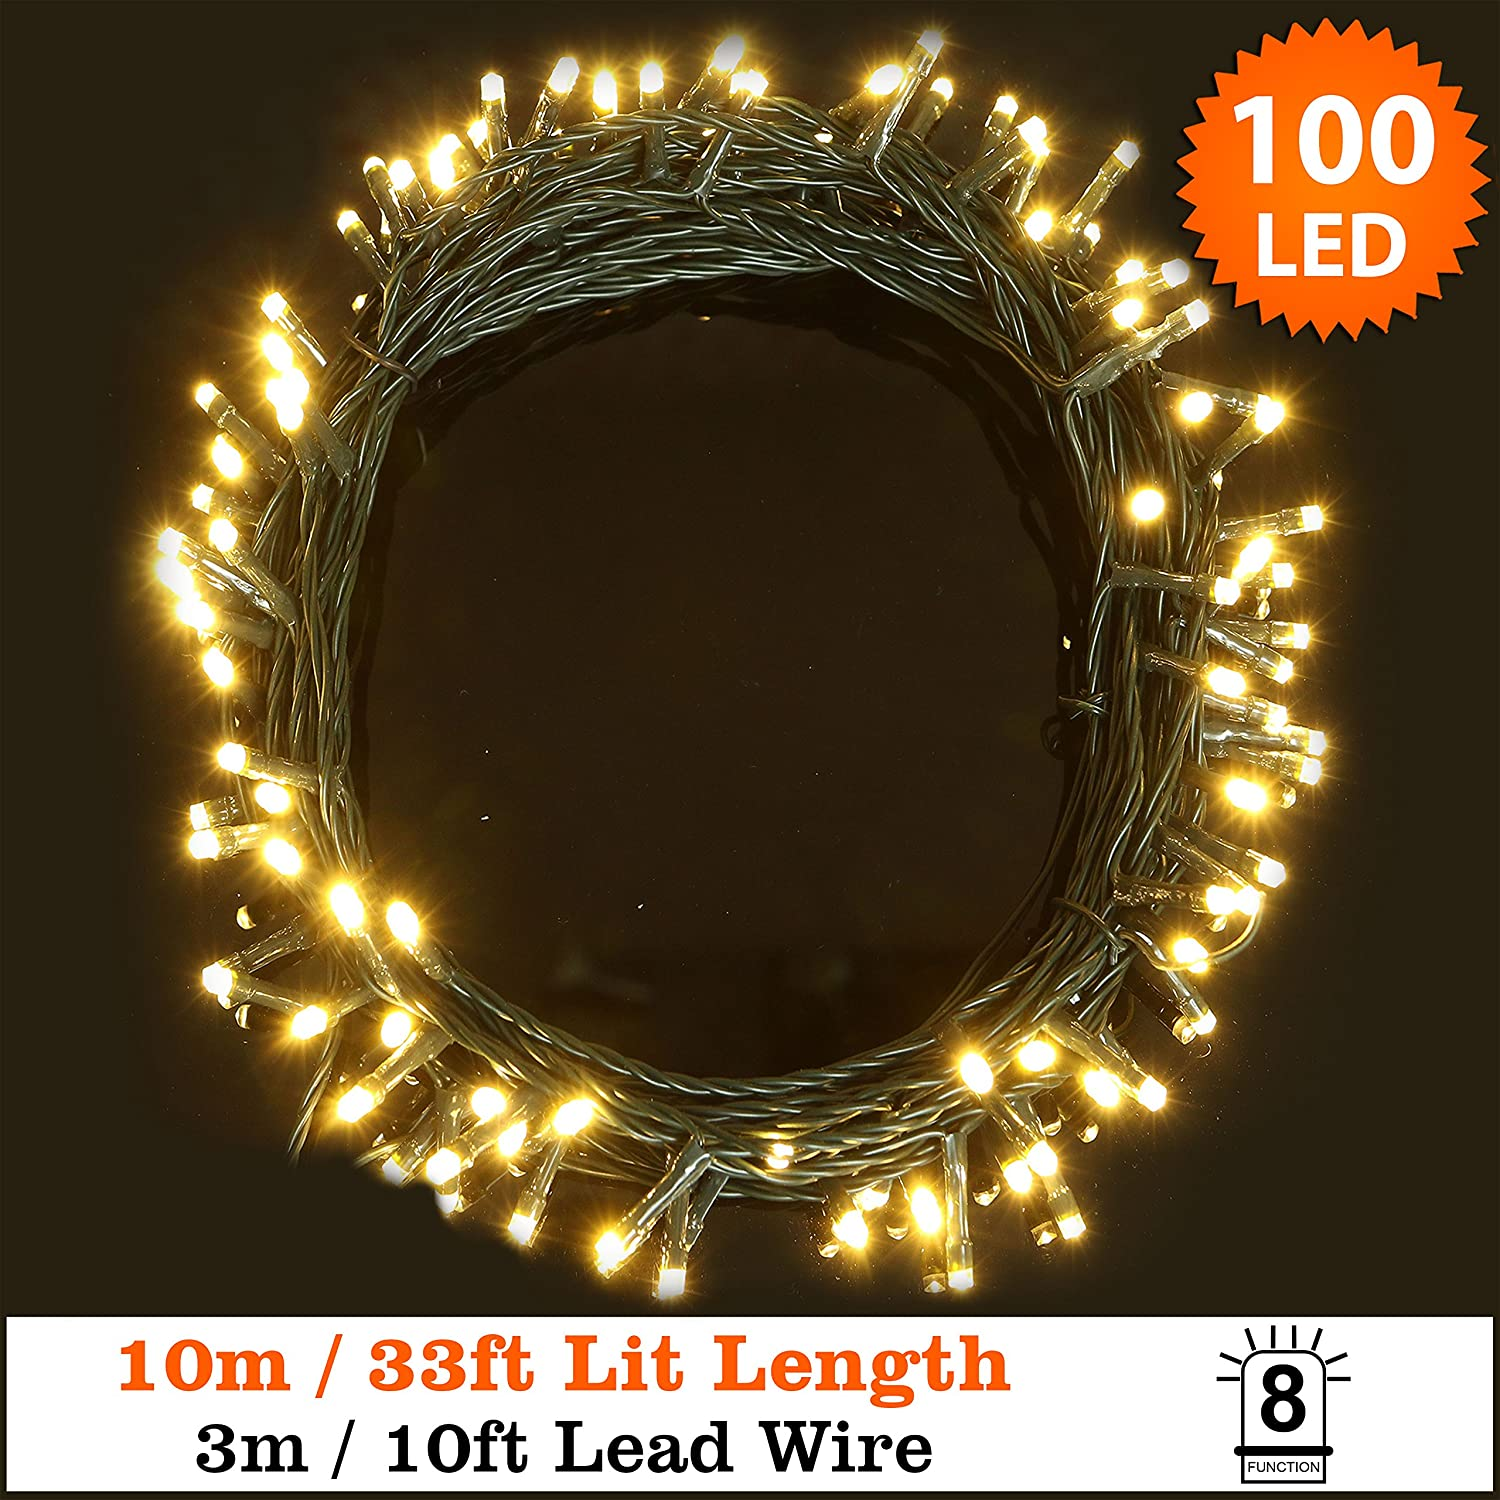 Fairy Lights 100 LED Warm White Indoor U0026 Outdoor String Lights 8 Functions  10m/33ft